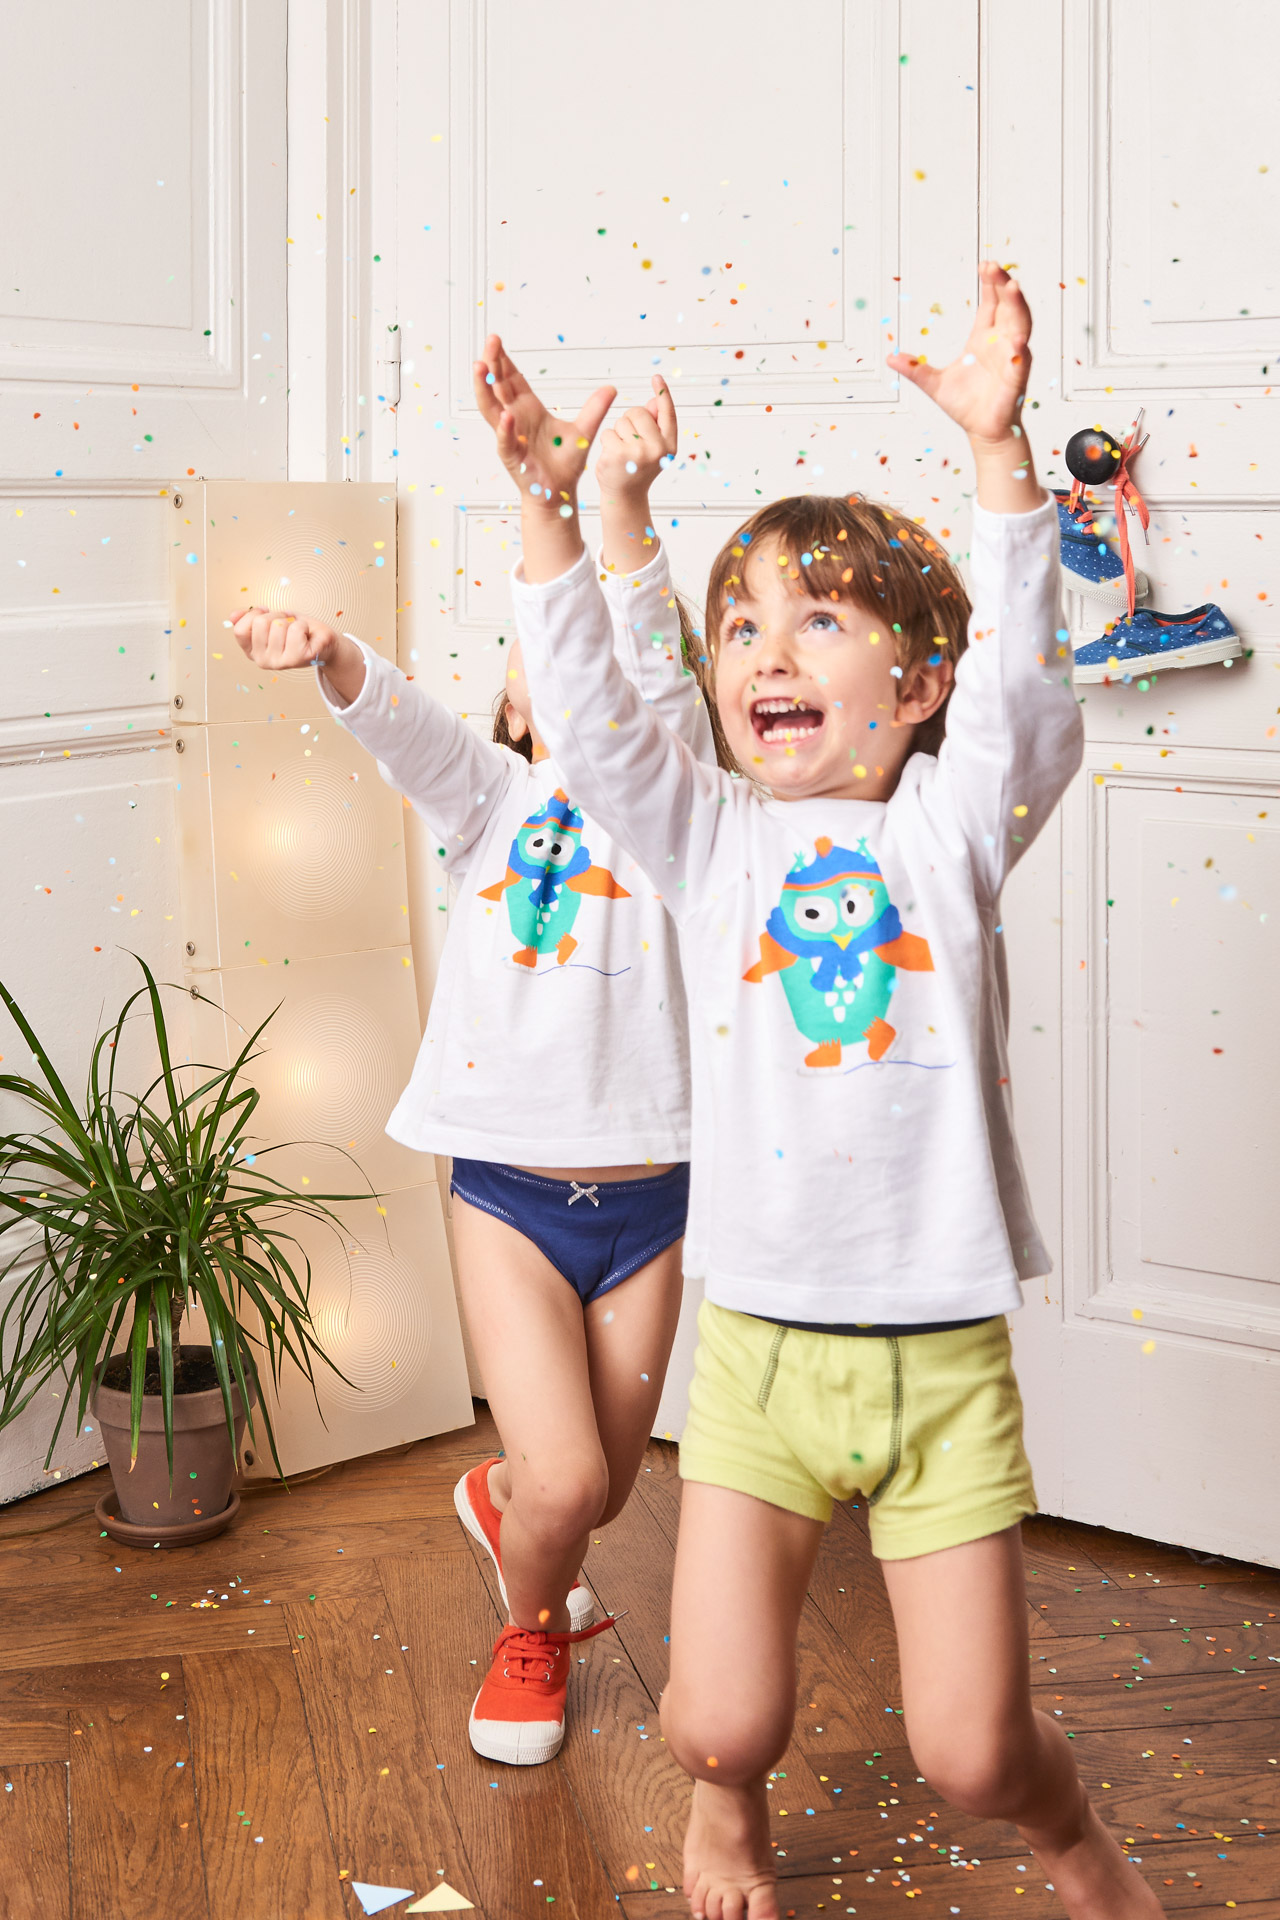 Haut Les Mains - Collection Enfant 2015-2016